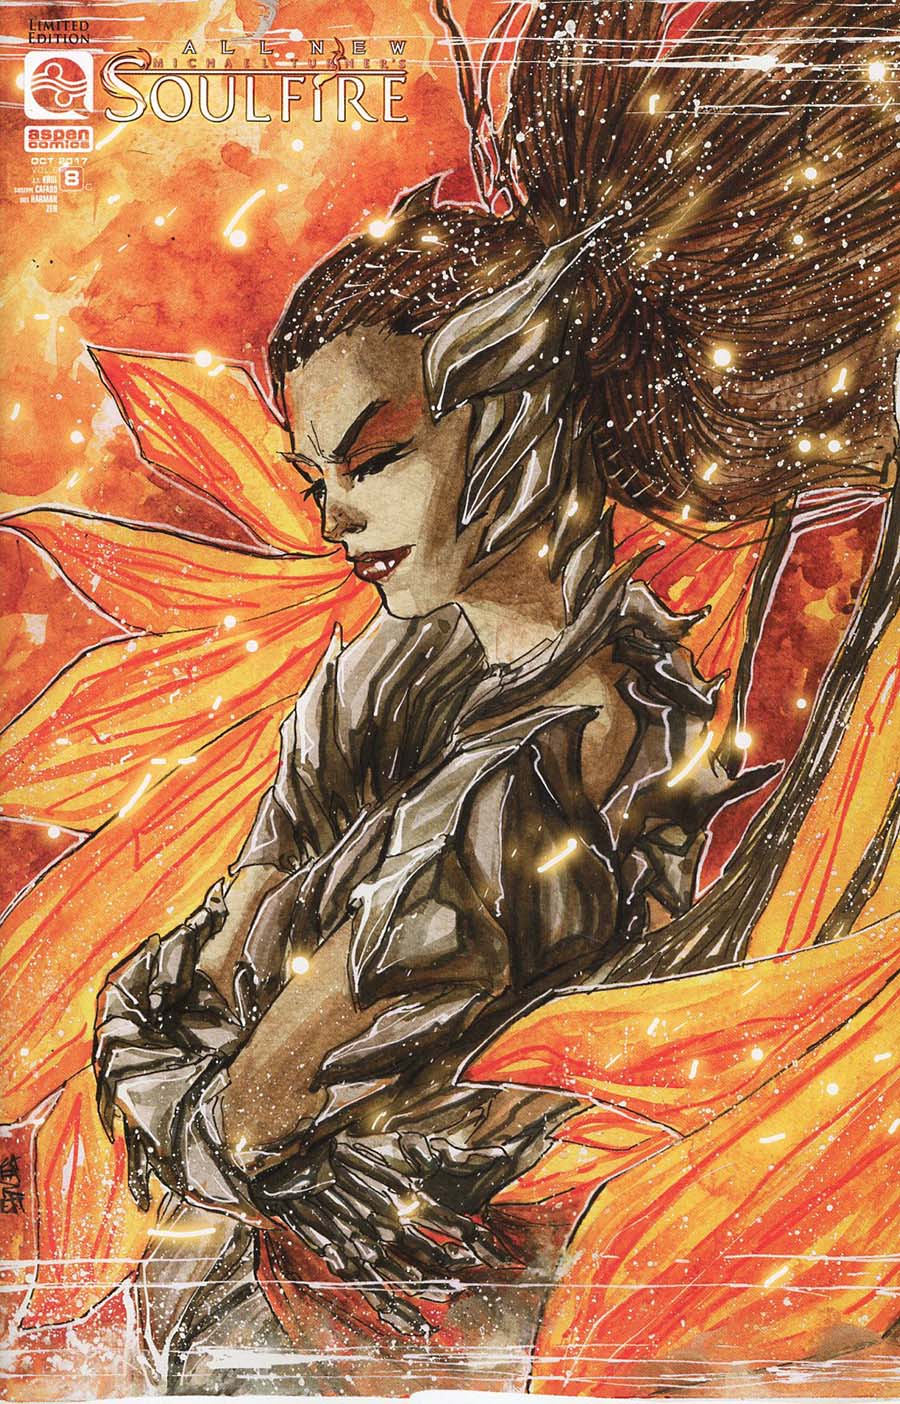 All New Soulfire Vol 2 #8 Cover C Incentive Giuseppe Cafaro Variant Cover